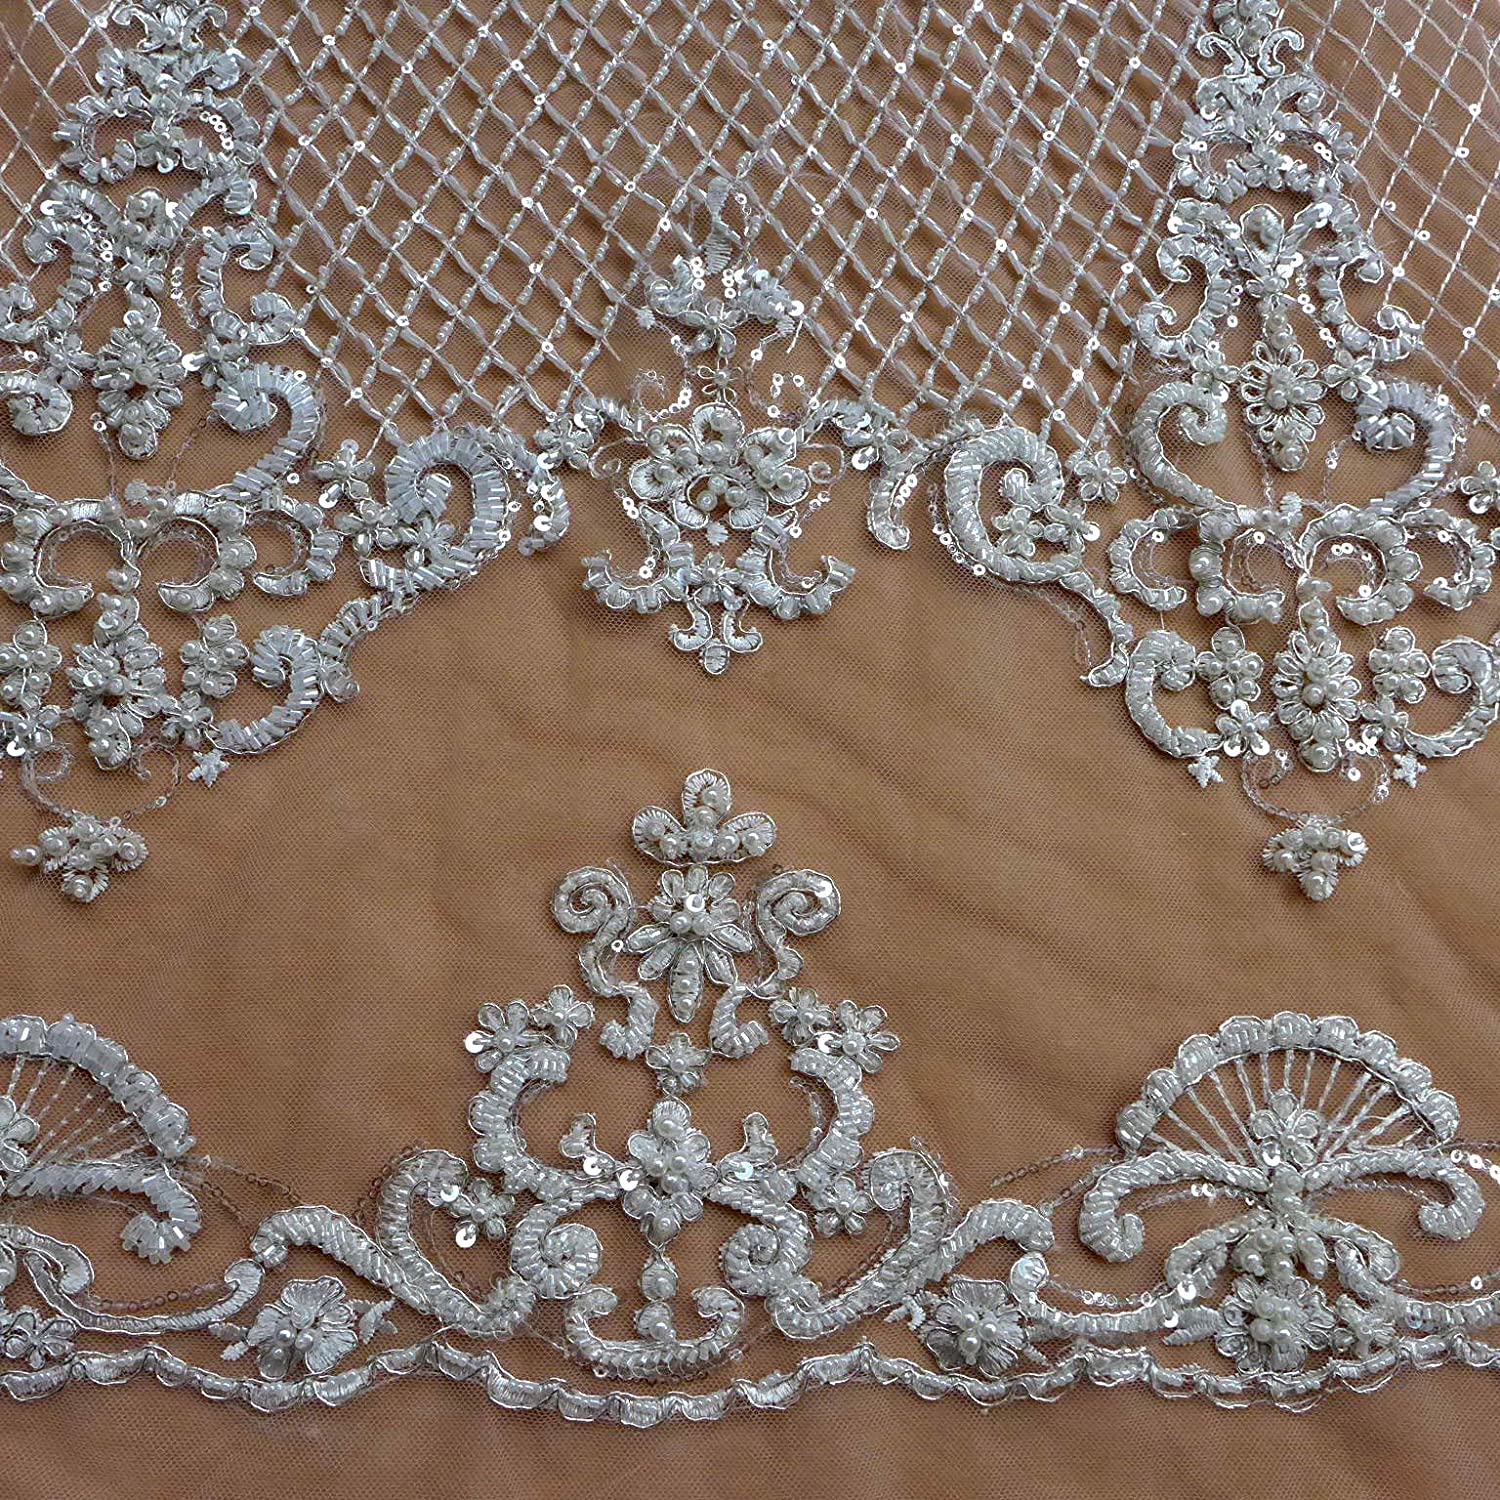 Super Luxury Full Sequined Beaded Lace Fabric Gauze 51 Inches Wide For Wedding Dress Veil Costume Bag DIY Supplies By The Yard